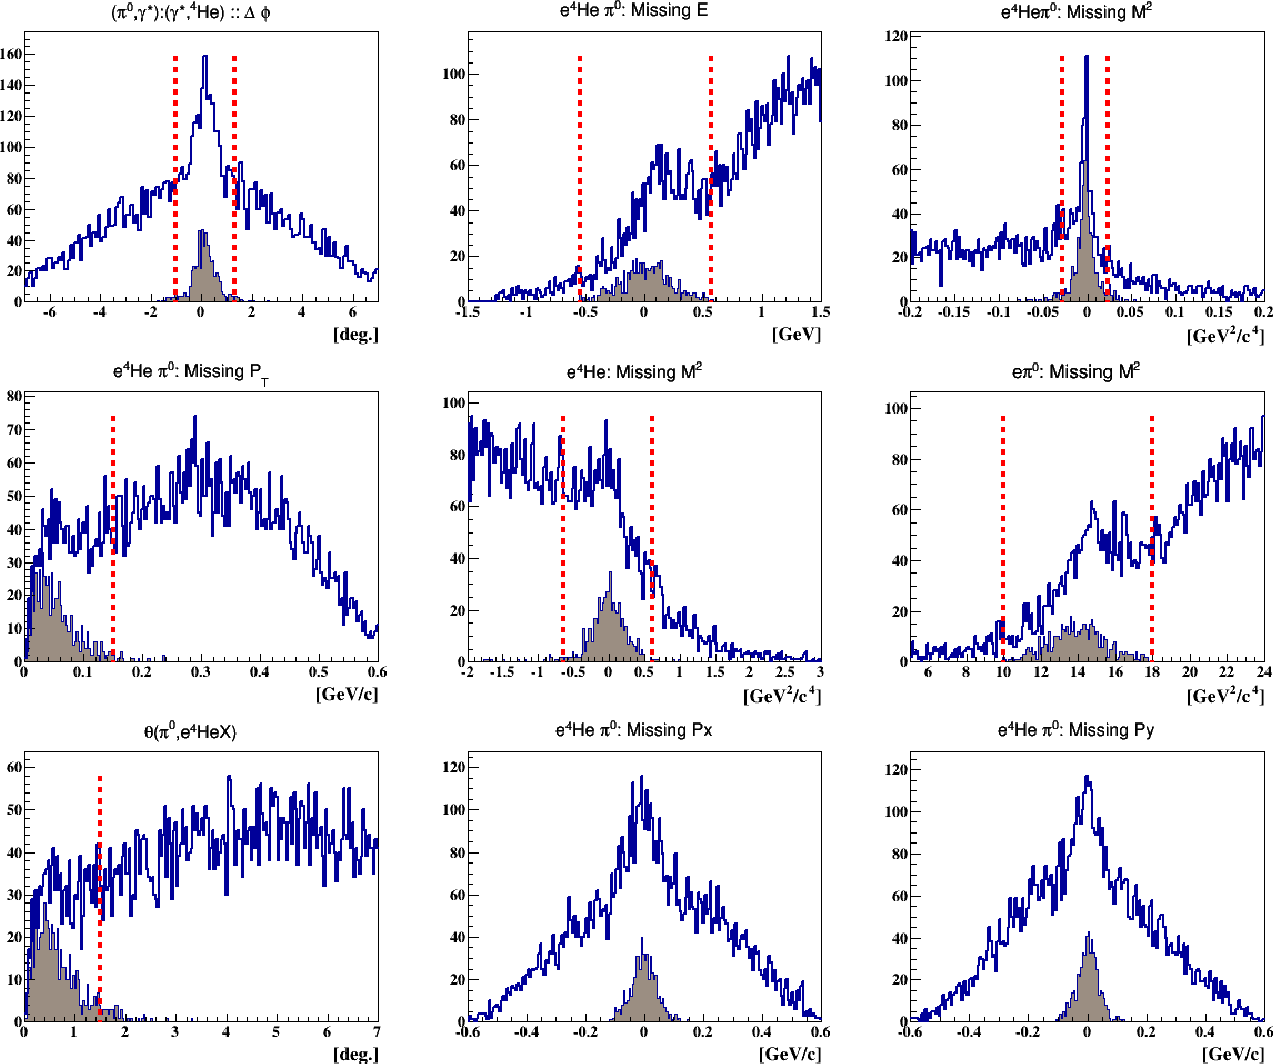 Figure D.1: The blue distributions represent all the e4Heπ0 events before the exclusivity cuts. The shaded distributions show the events which passed all the exclusivity cuts except for the quantity plotted. The red lines are 3σ cuts. The mean and sigma values of each distribution are listed in table E.2.